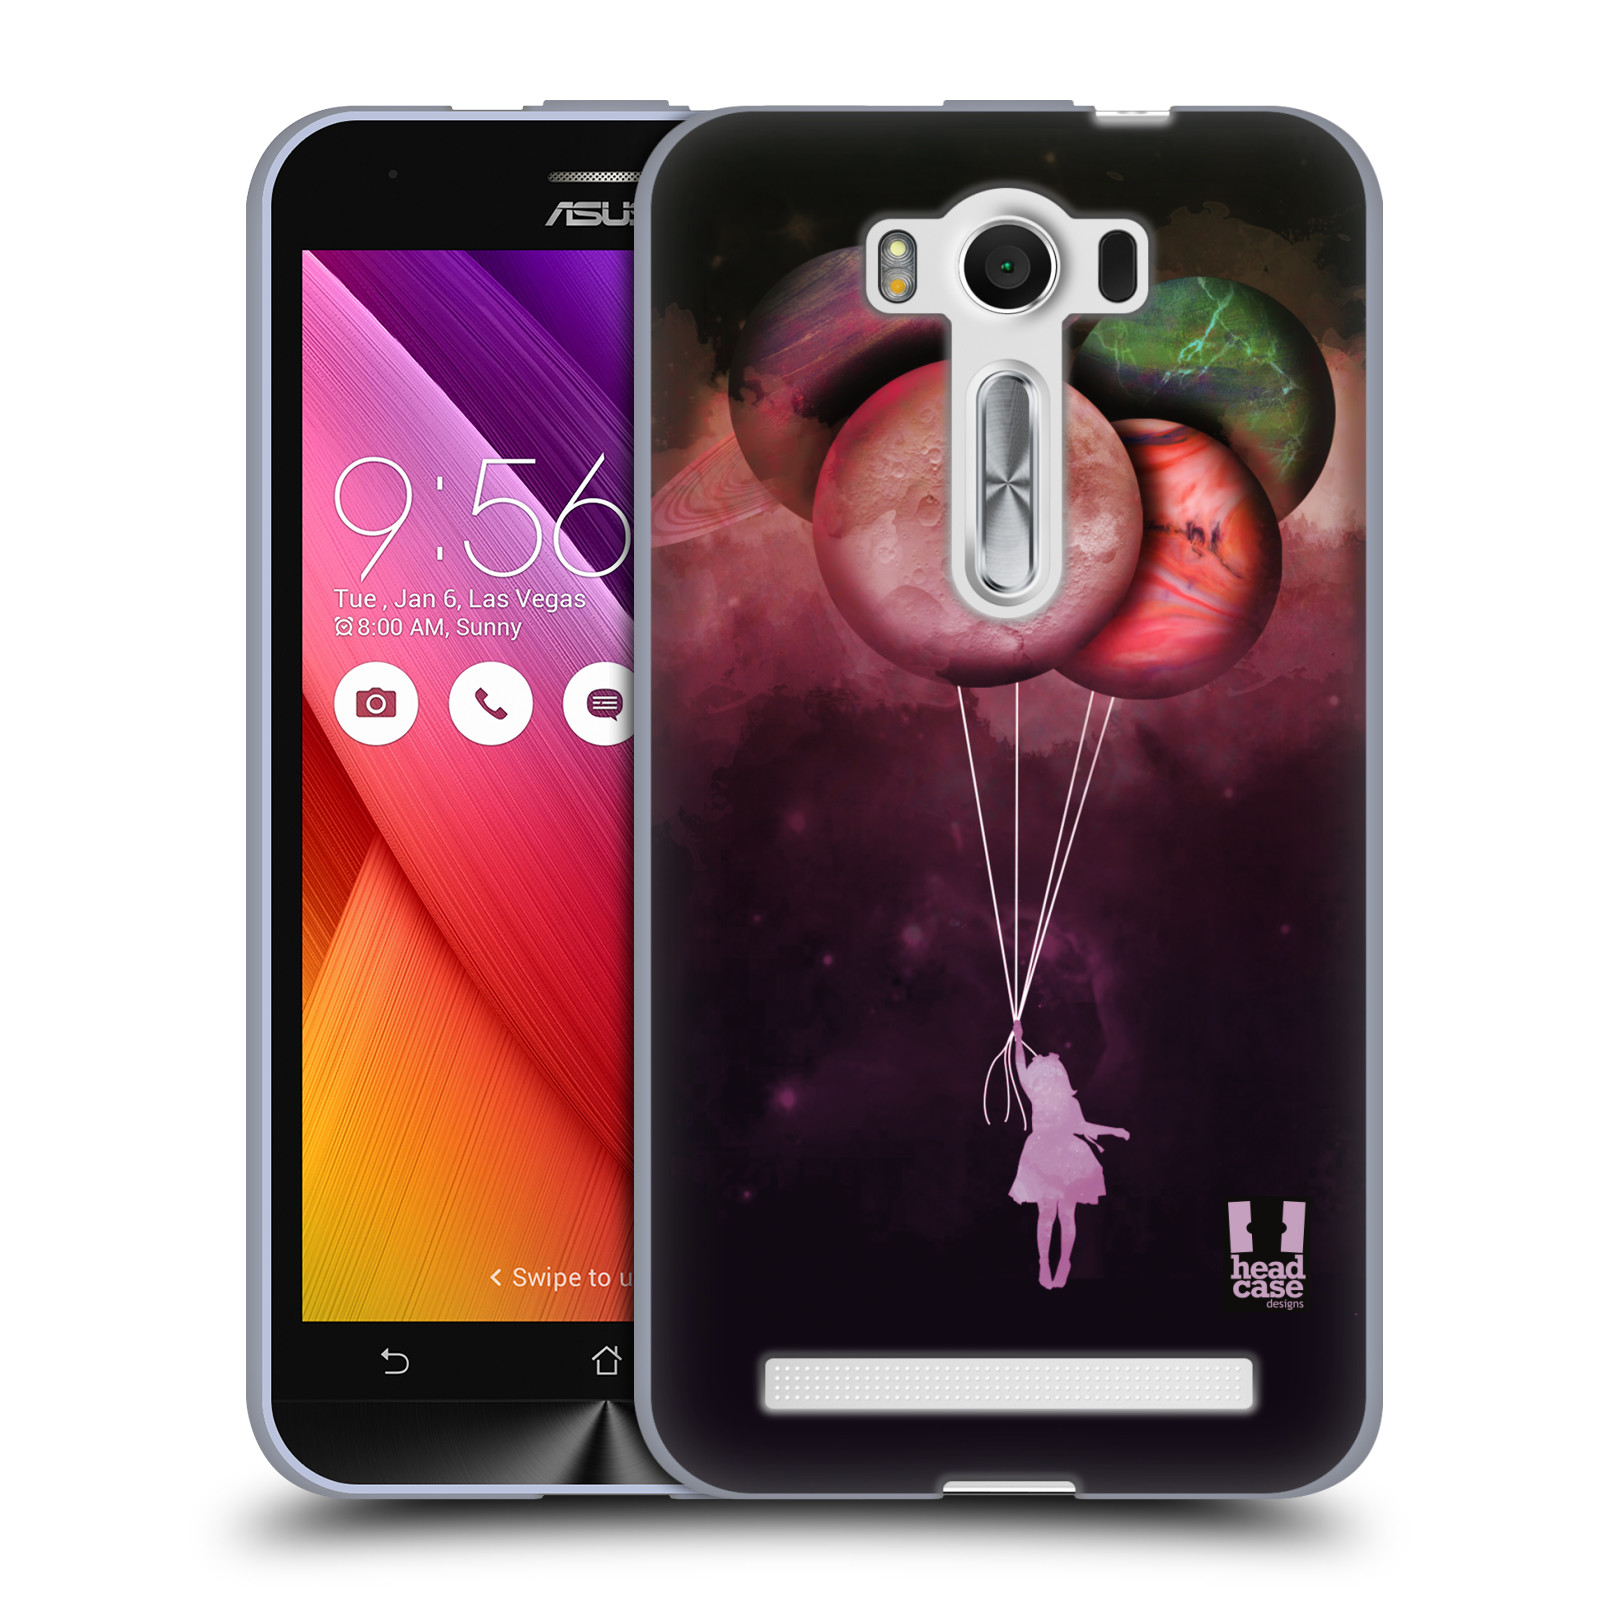 HEAD-CASE-DESIGNS-MOON-TRAVEL-SOFT-GEL-CASE-FOR-AMAZON-ASUS-ONEPLUS